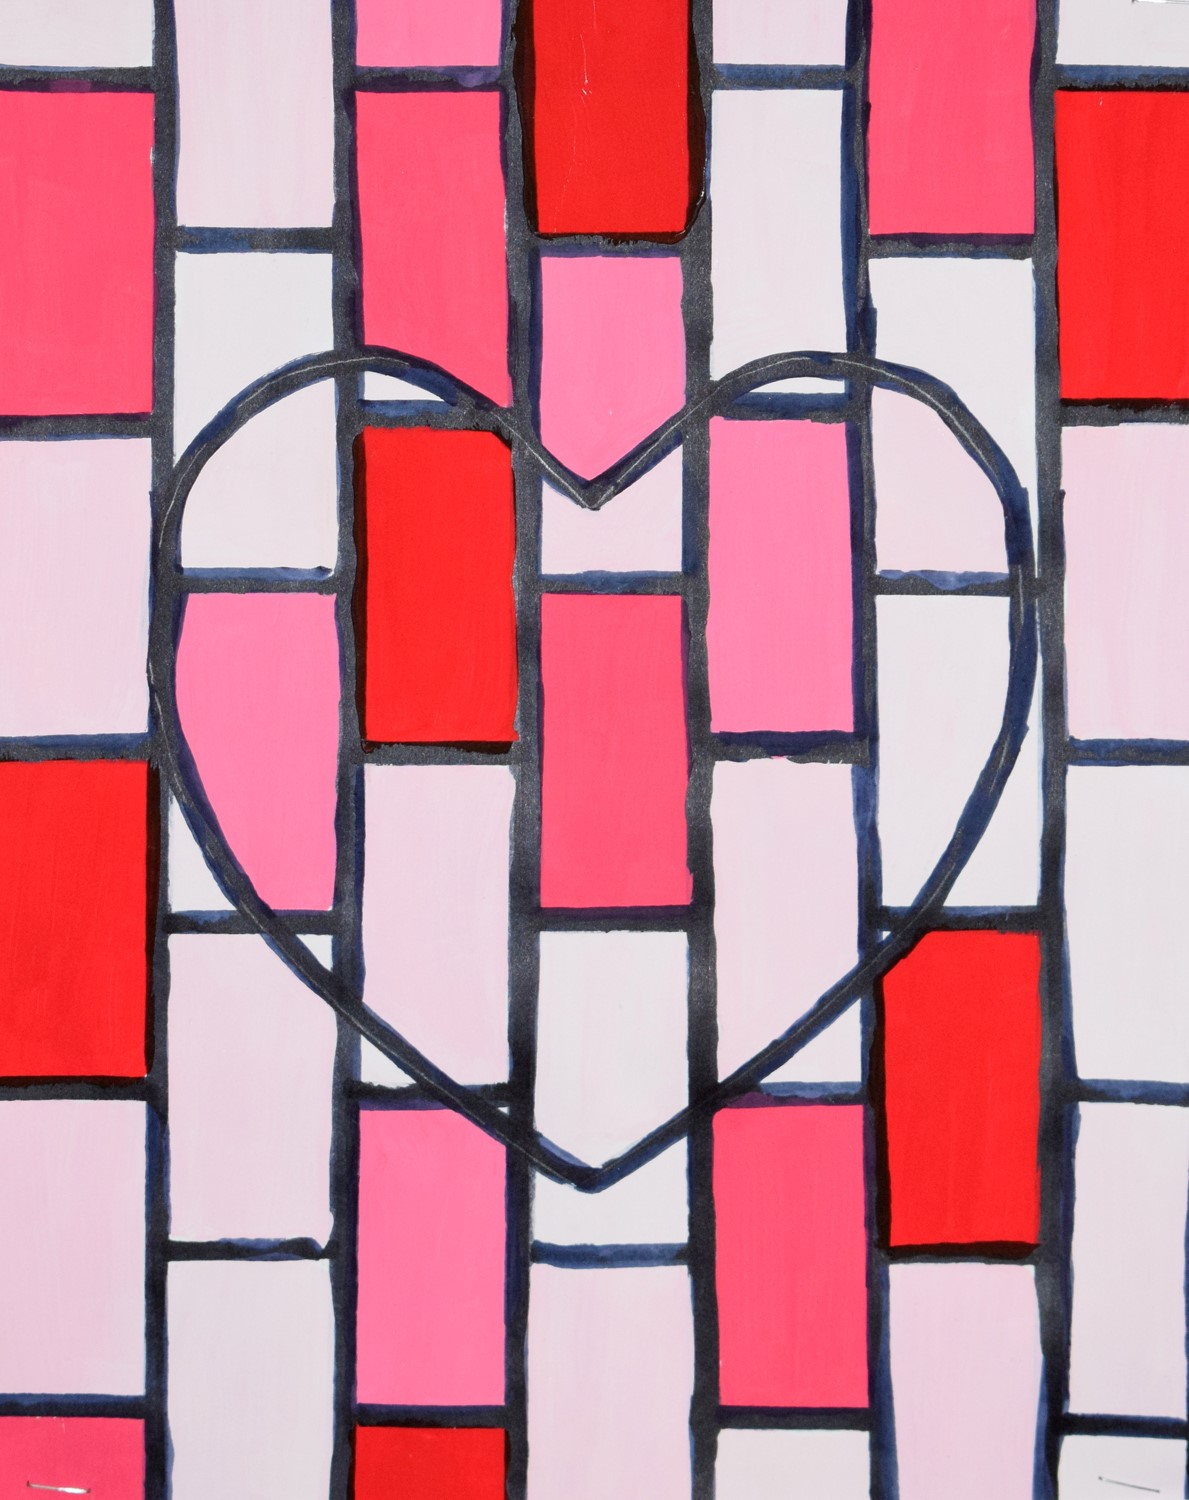 Stained-glass Heart by Ava Brunetti